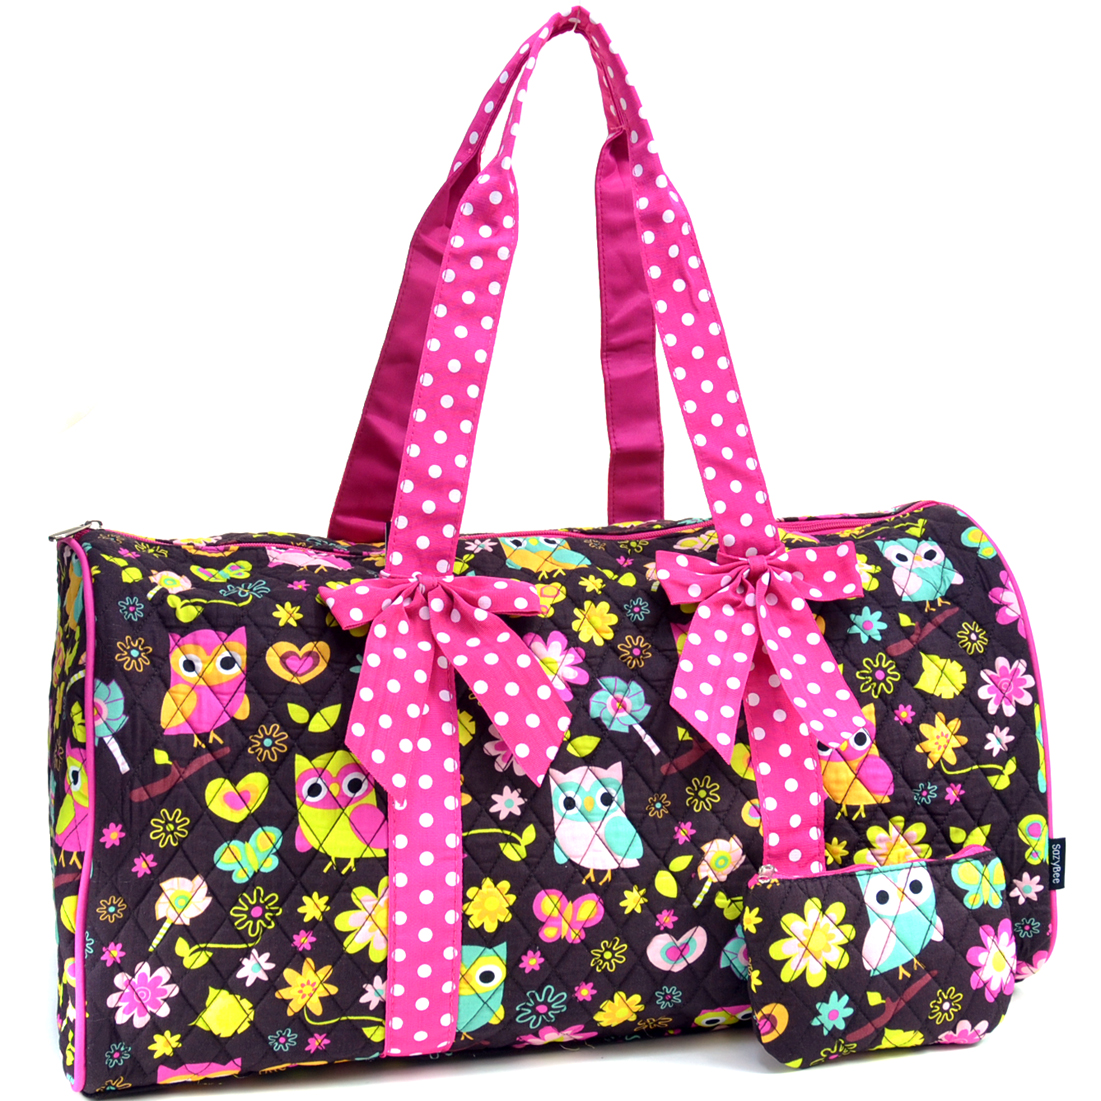 Sazy Bee Designs Quilted Owl & Floral Print Cotton Duffel w/Removable Bow